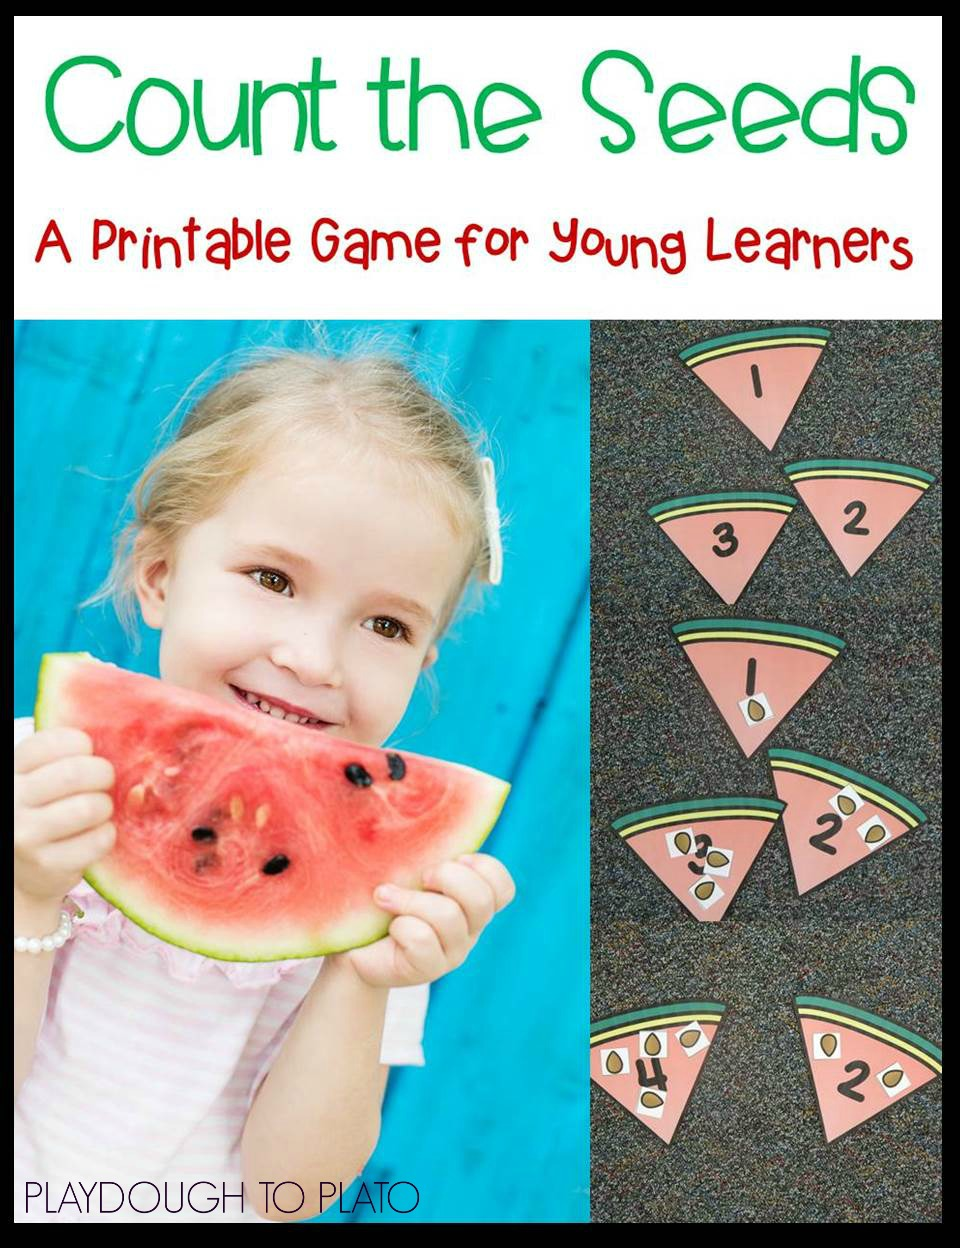 Free counting cards! (Playdough to Plato) - The Kindergarten Connection